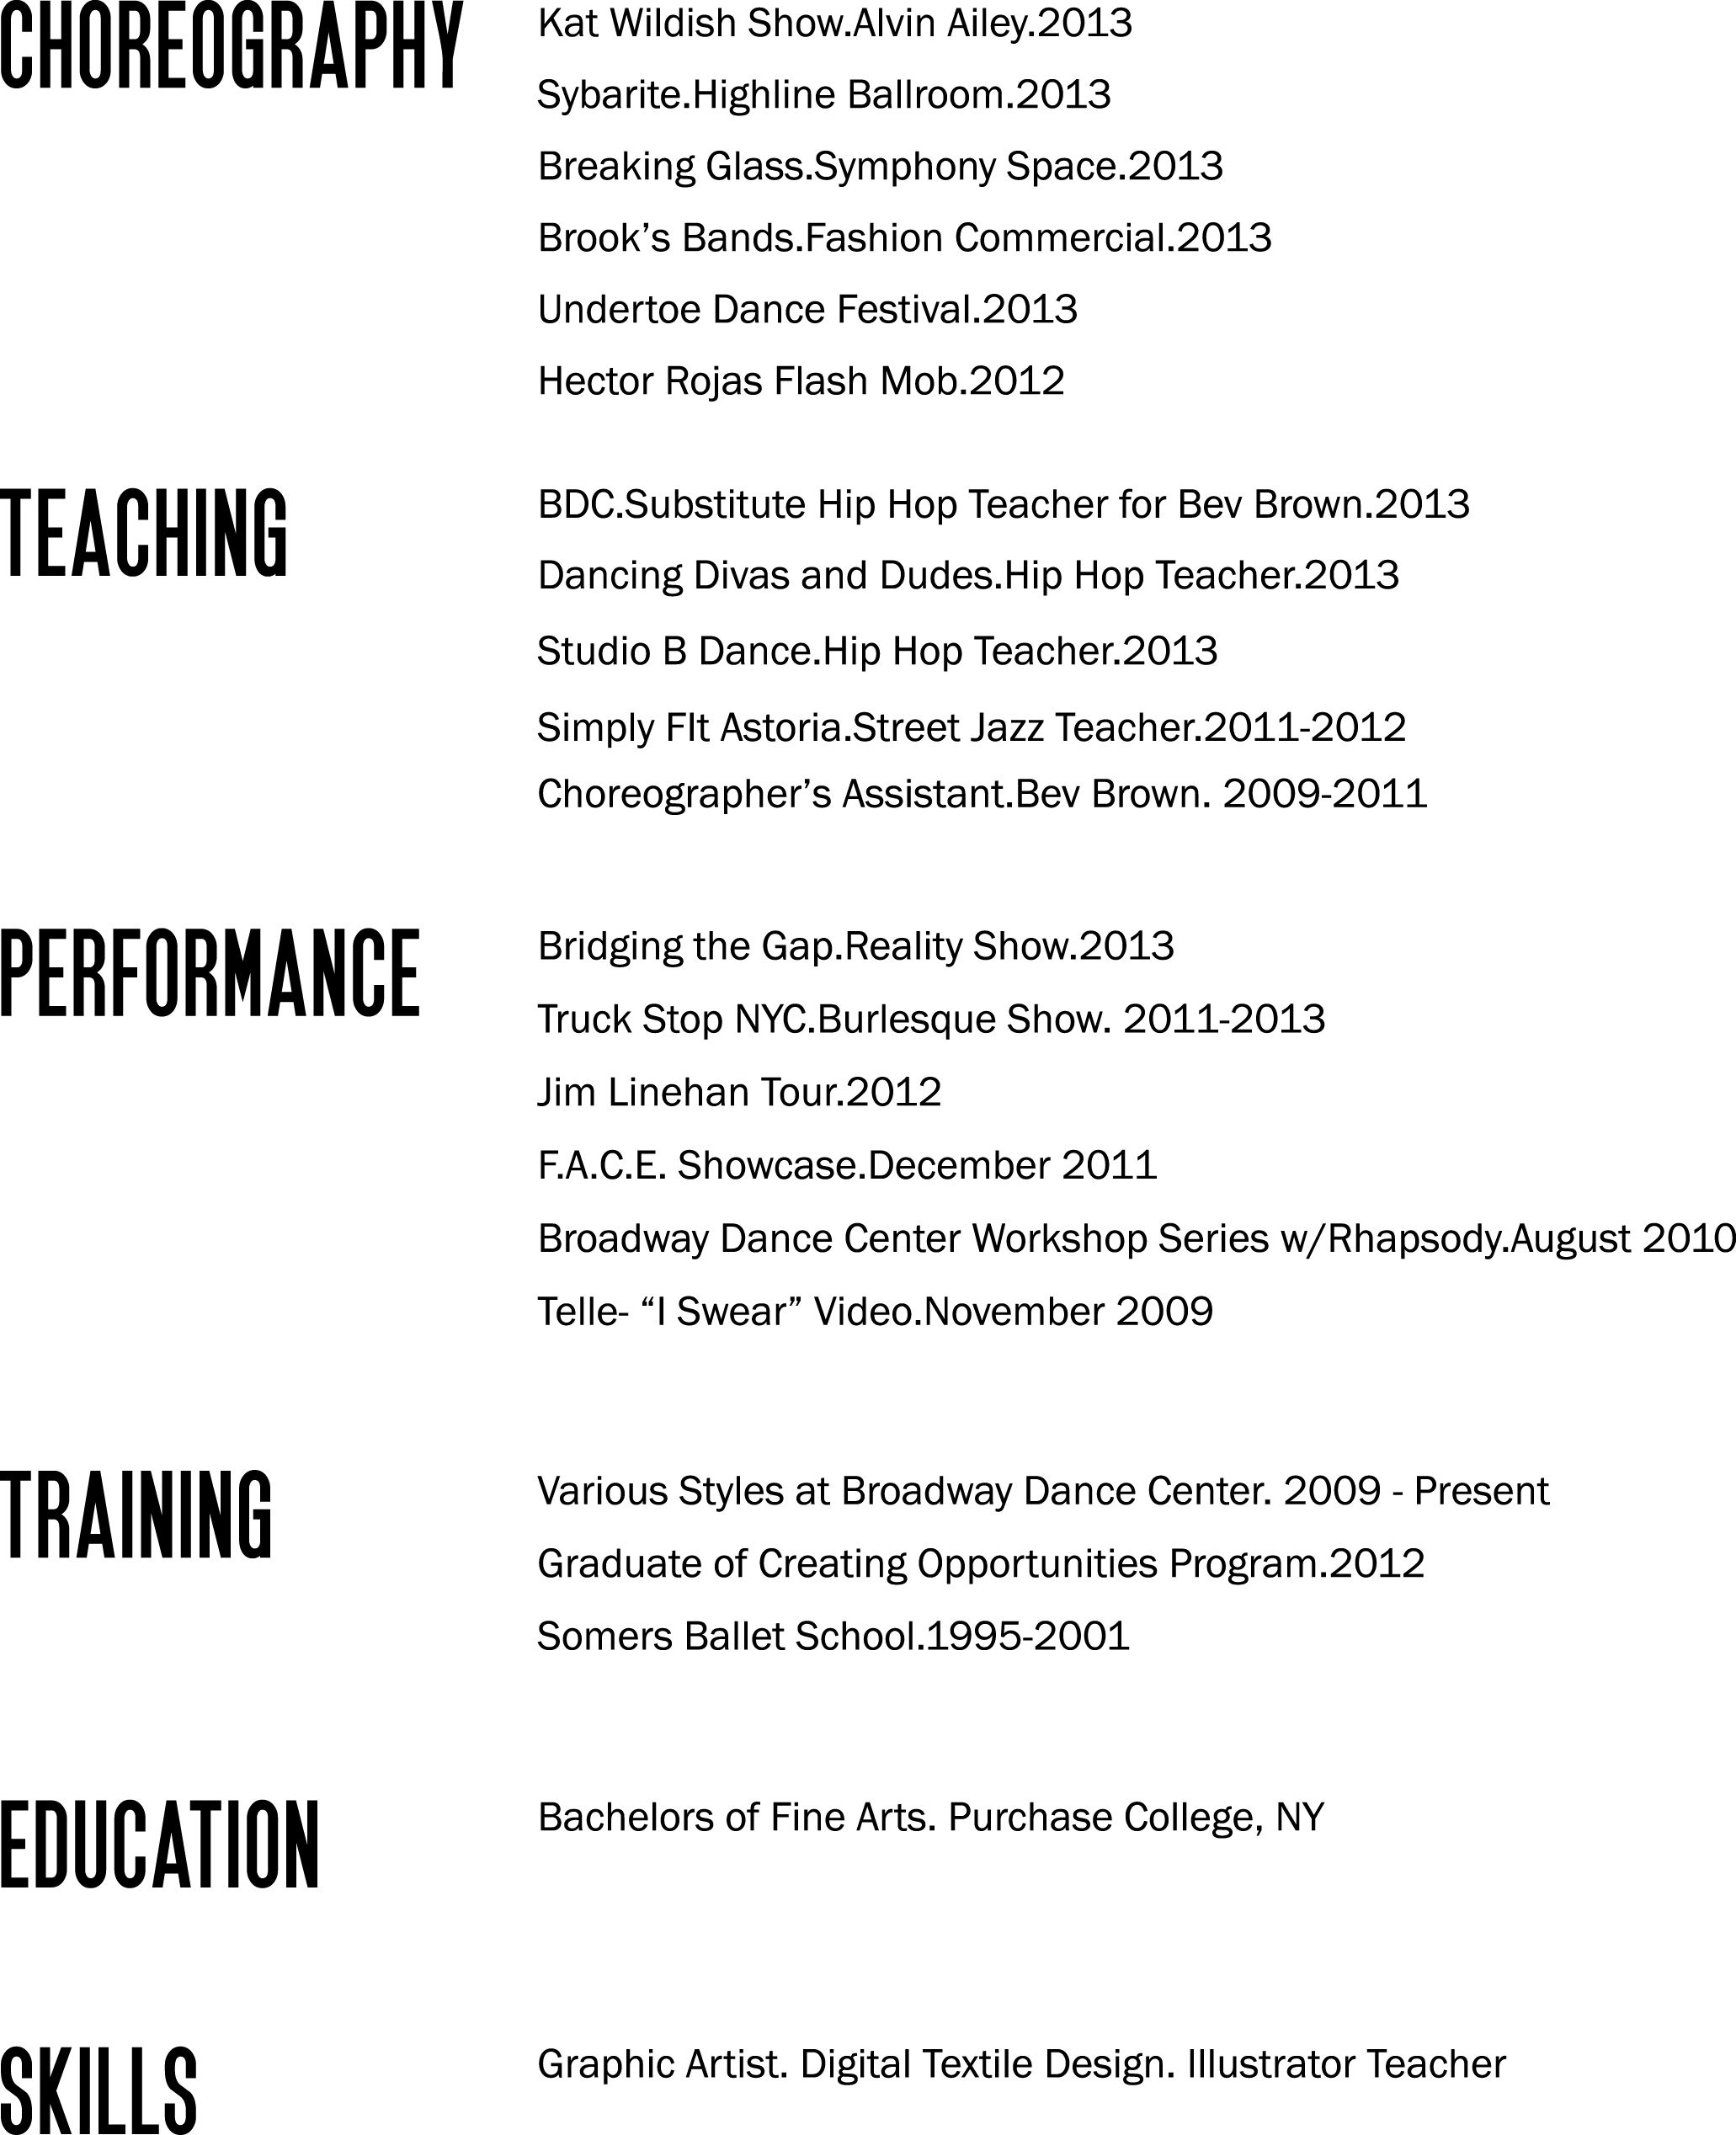 Bad Layout But Good Reminder Of What To Put On A Dance Resume And How Separate Education Training